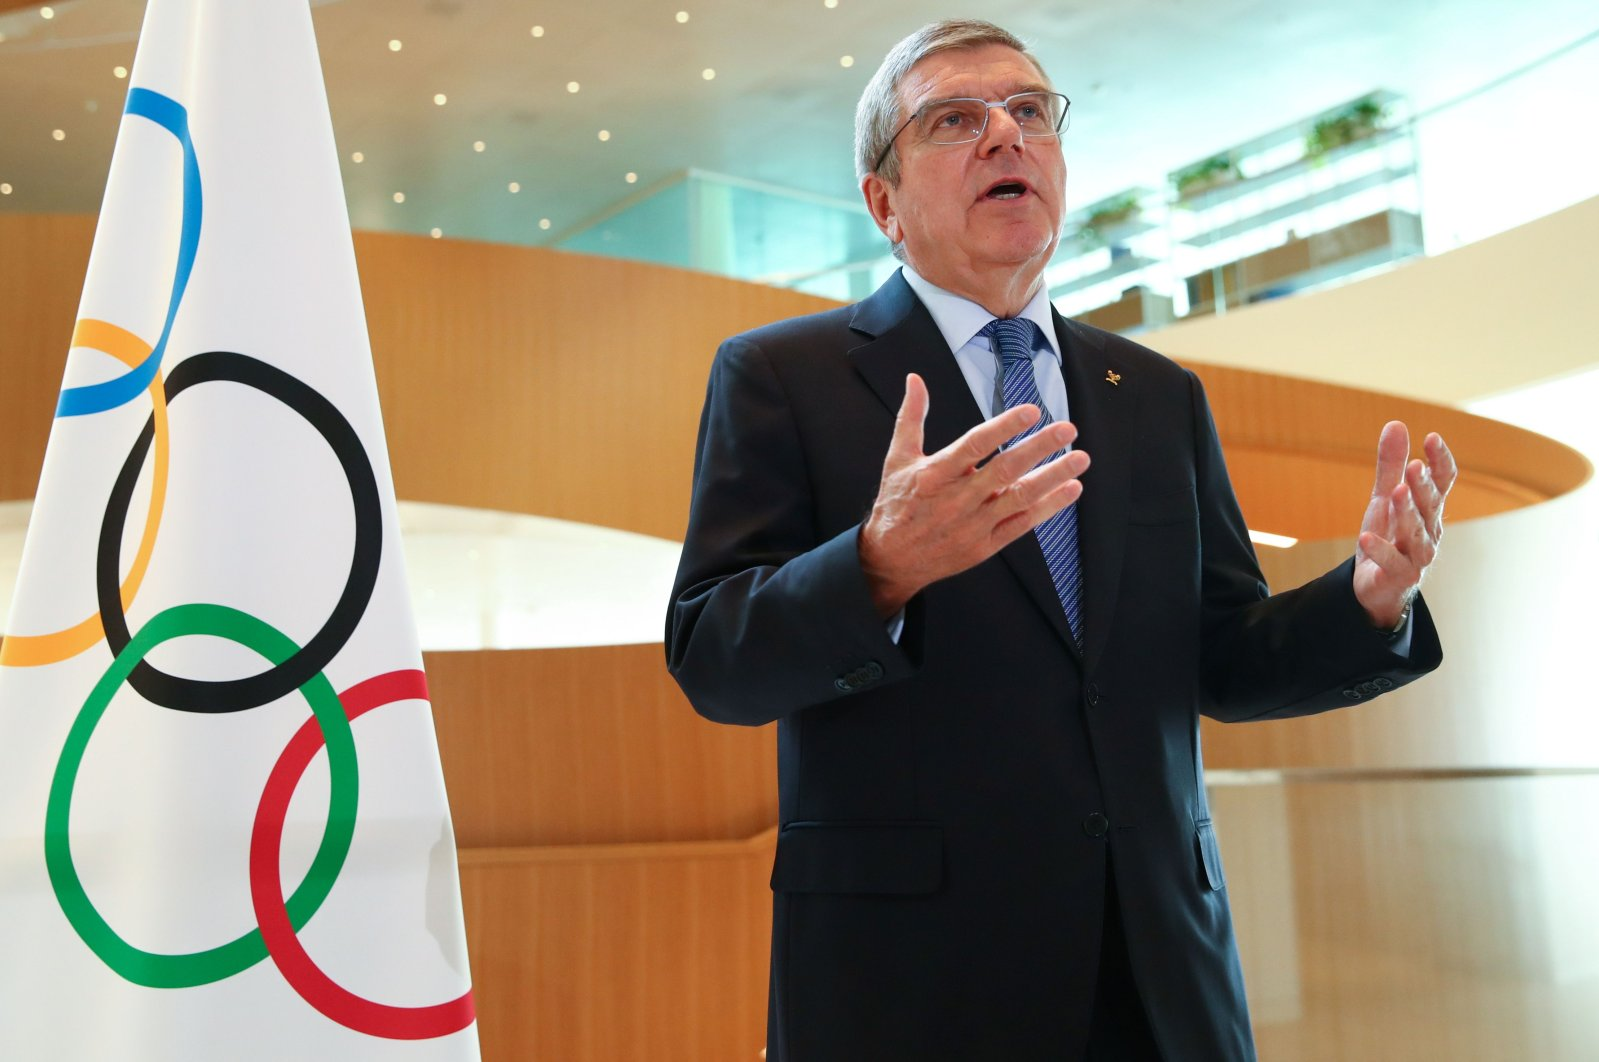 International Olympic Committee (IOC) President Thomas Bach gestures as he speaks during an interview after the historic decision to postpone the 2020 Tokyo Olympic Games due to the coronavirus pandemic, in Lausanne, Switzerland, March 25, 2020. (AFP Photo)